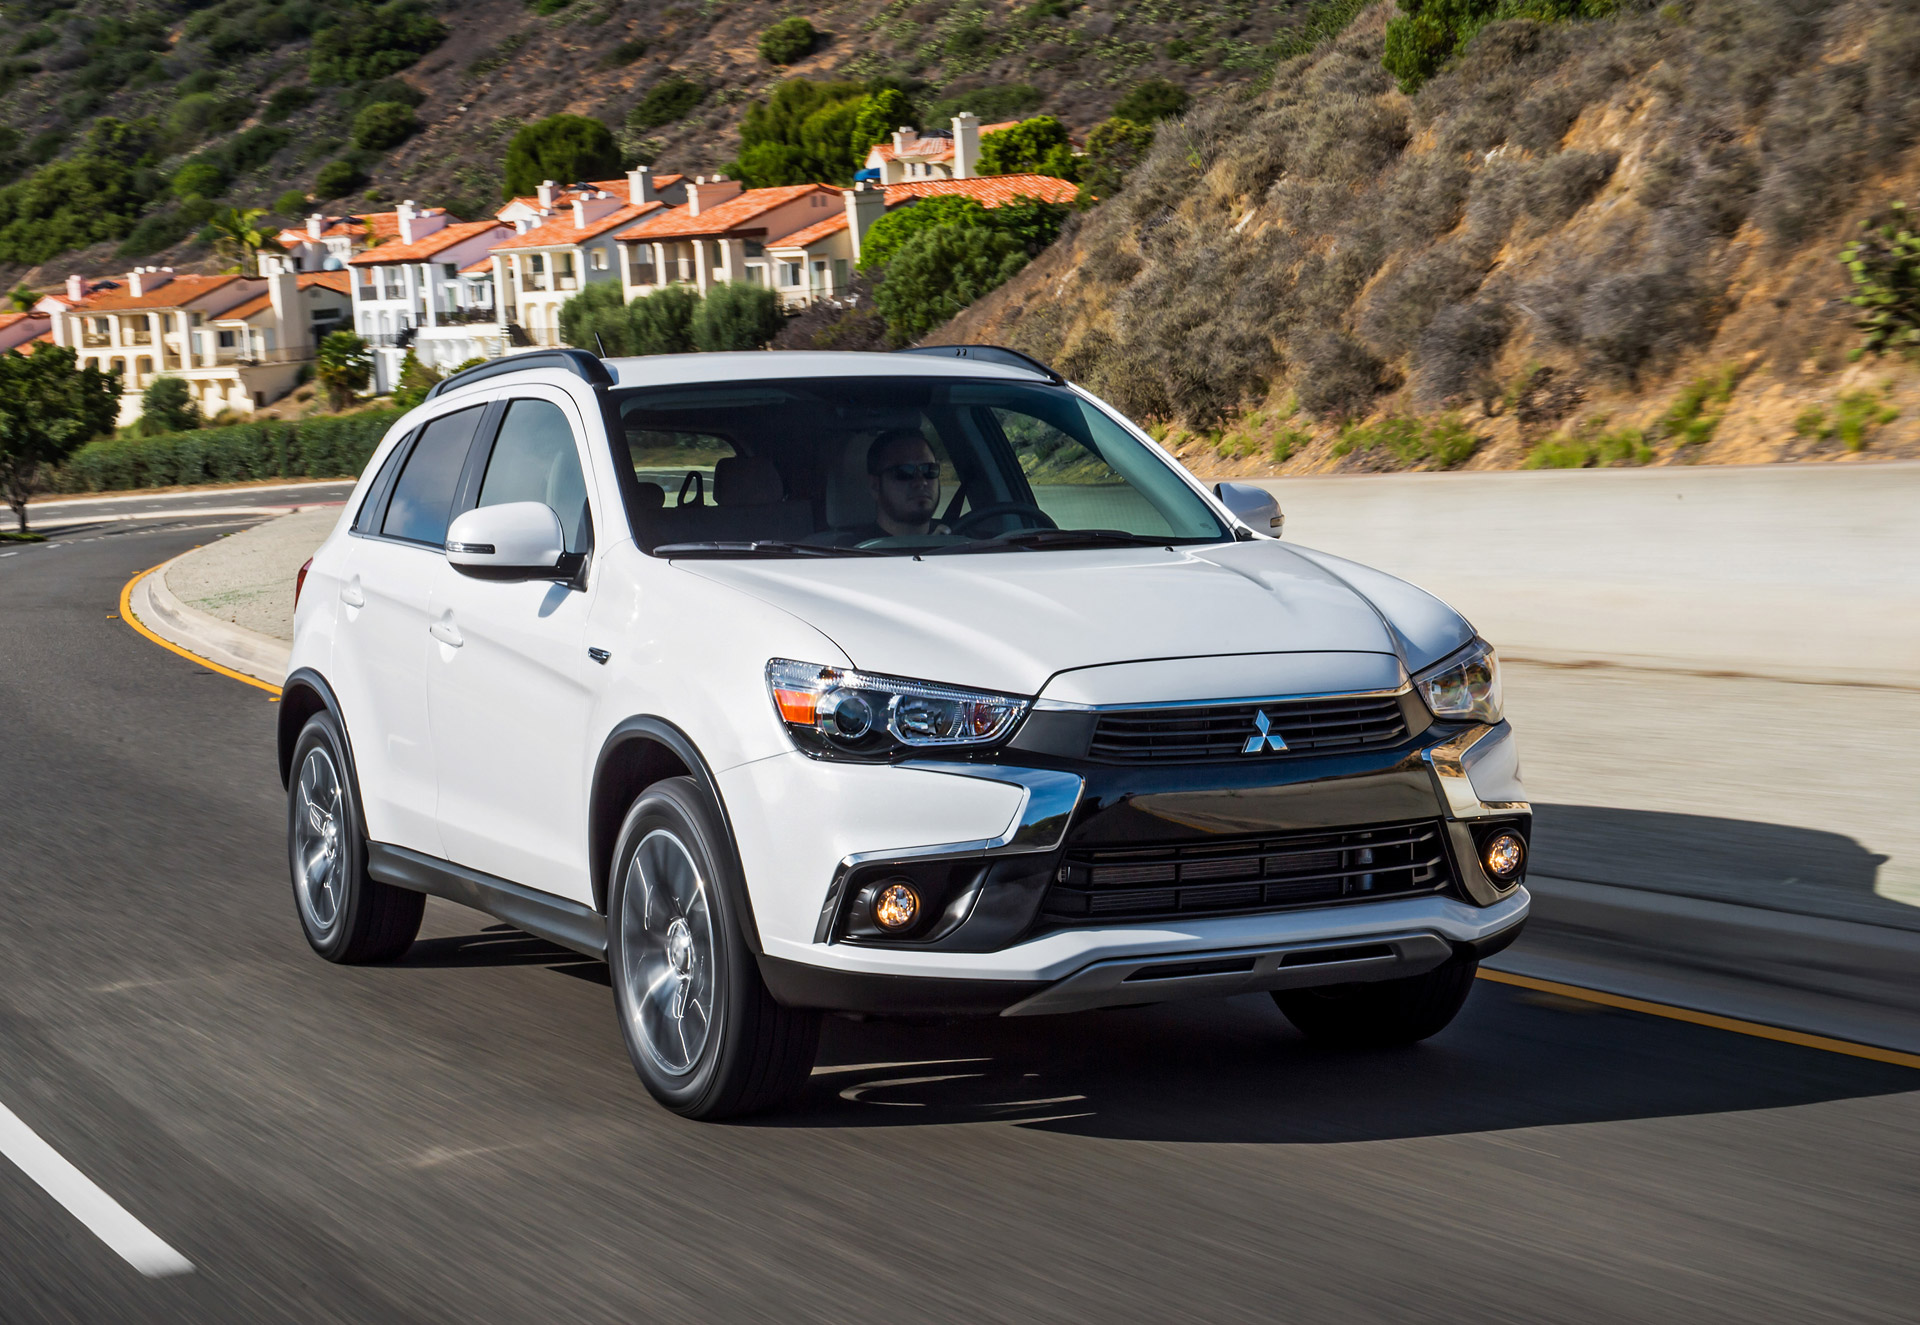 2016 mitsubishi outlander outlander sport recalled to fix door latch glitch